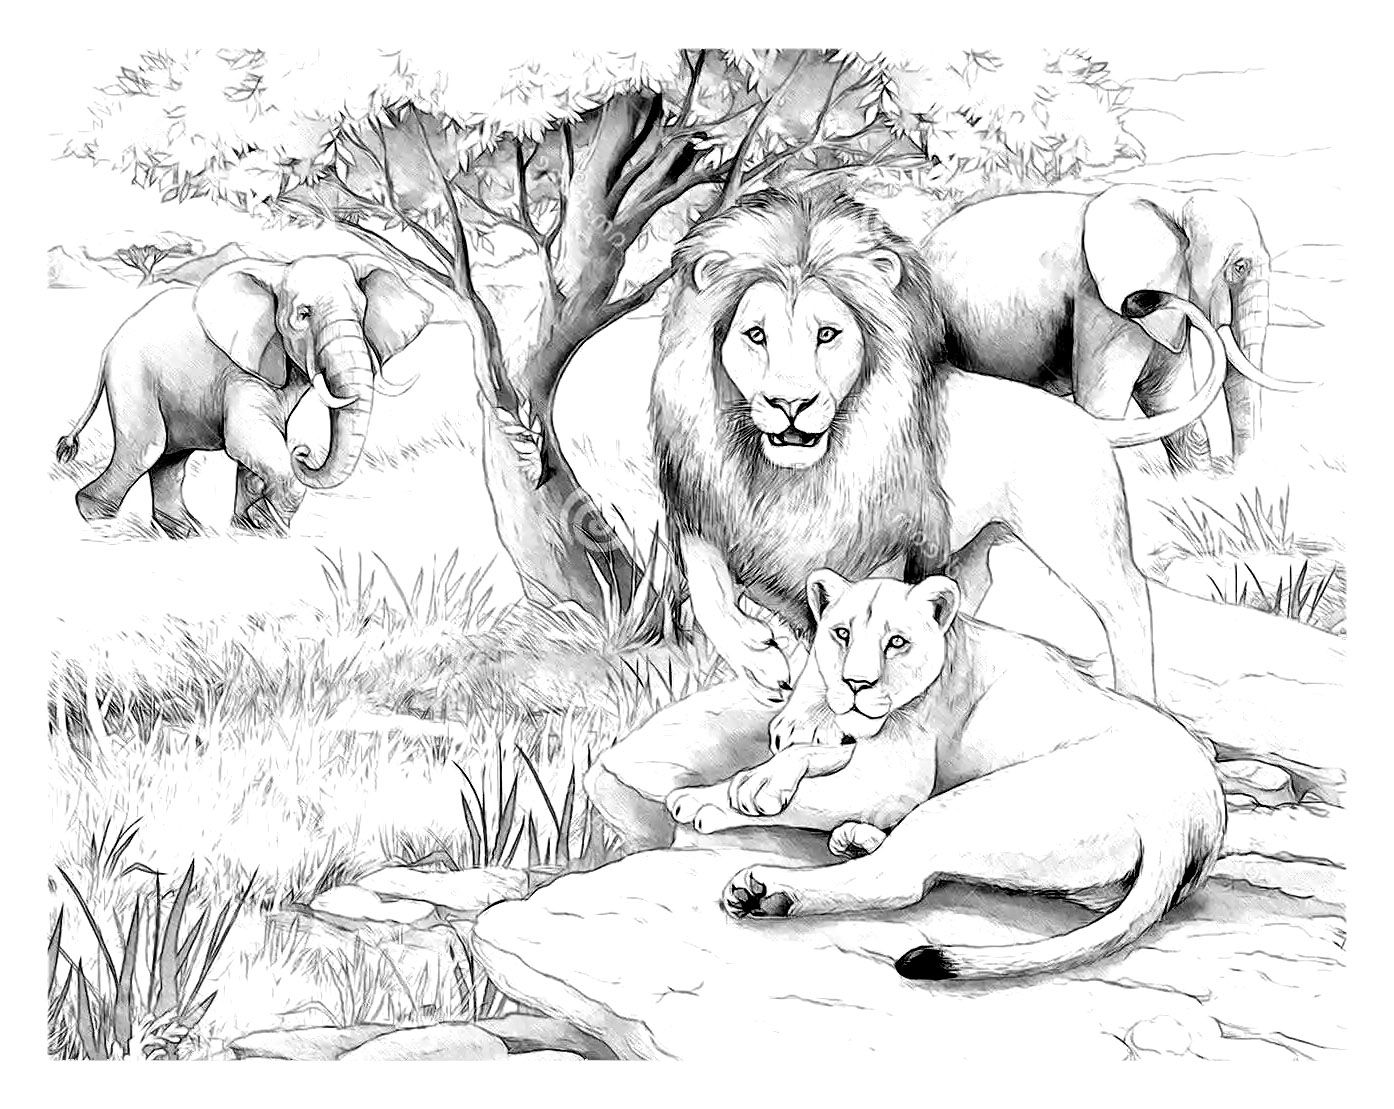 Free coloring page lion - Free Coloring Page Coloring Adult Africa Lions Lions Family With Elephants